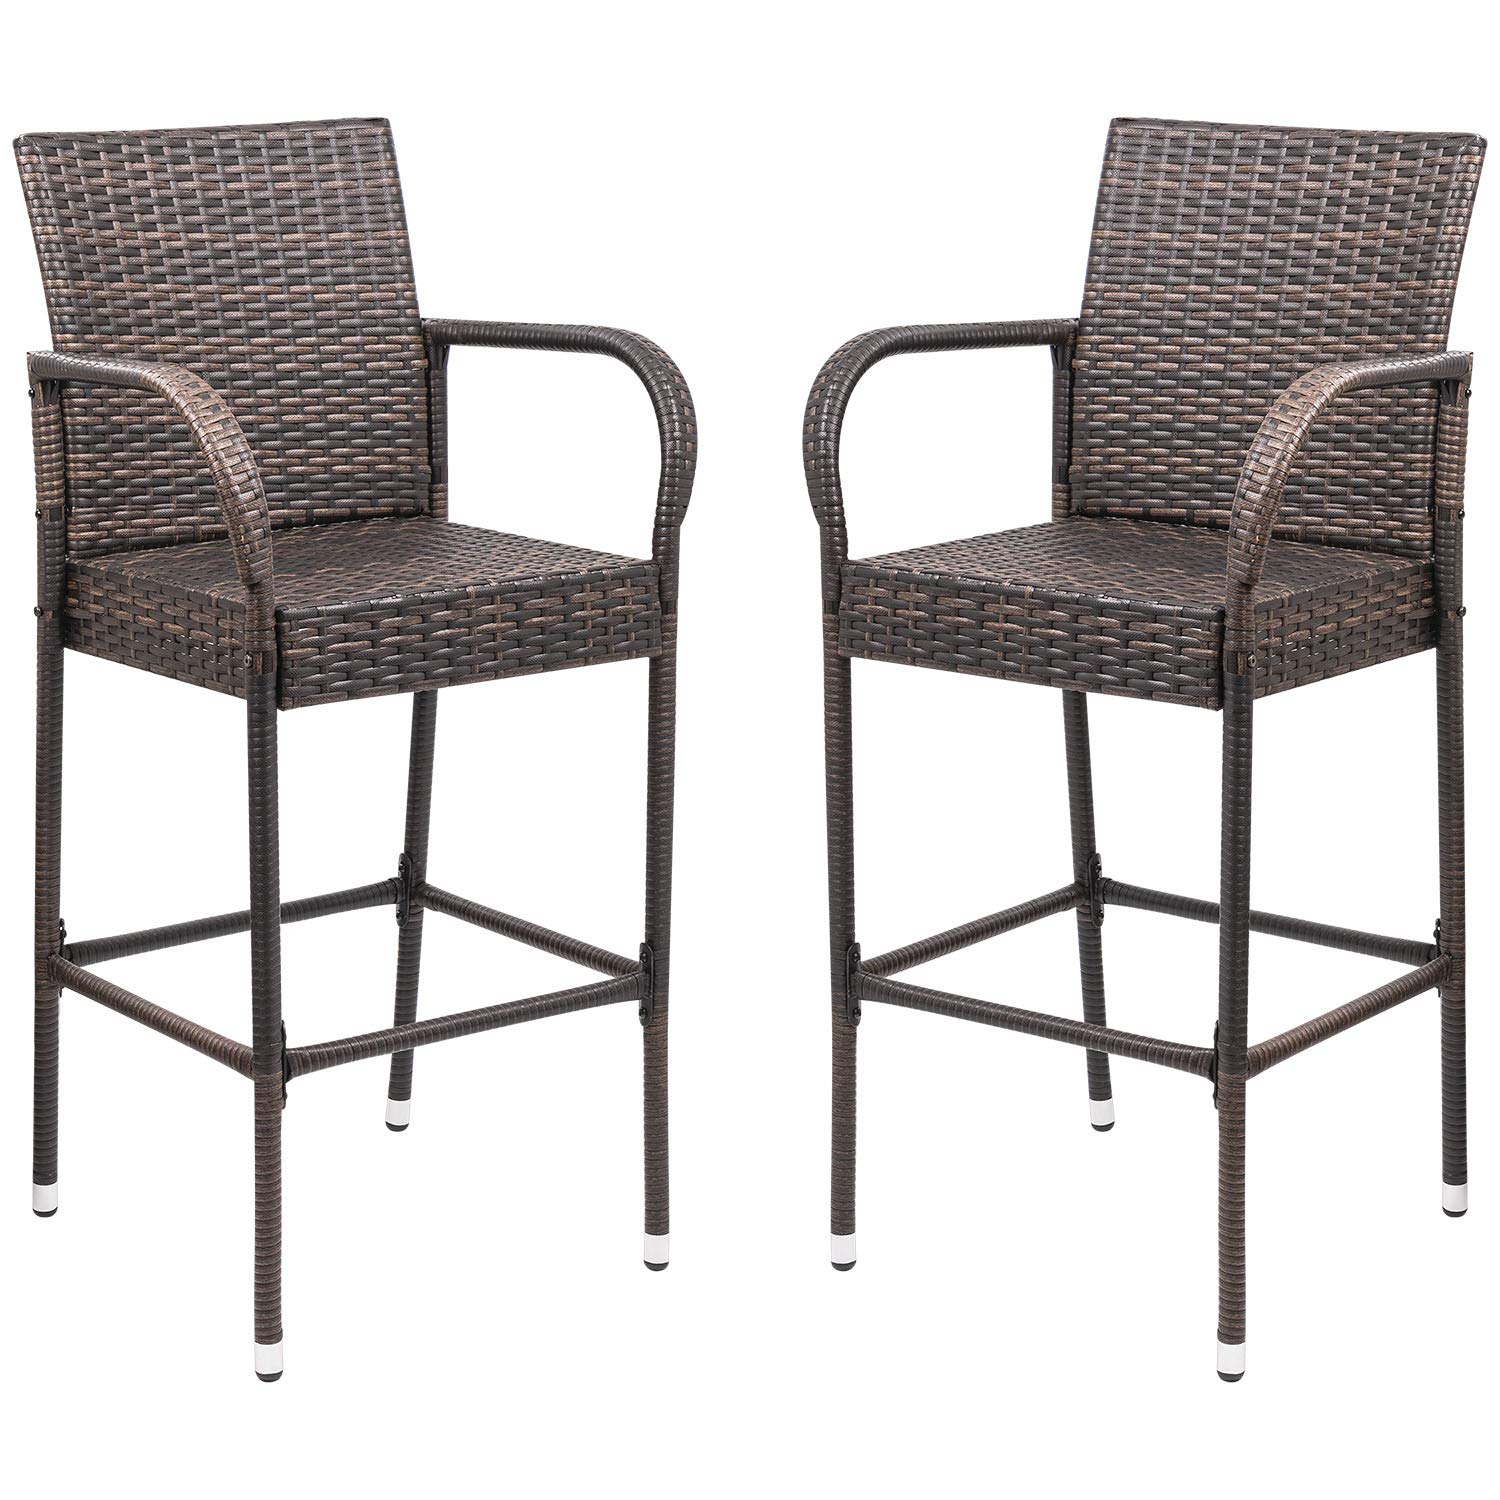 Homall Patio Bar Stools Wicker Barstools Indoor Outdoor Bar Stool Patio Furniture with Footrest and Armrest for Garden Pool Lawn Backyard Set of 2 (Brown) by Homall (Image #7)